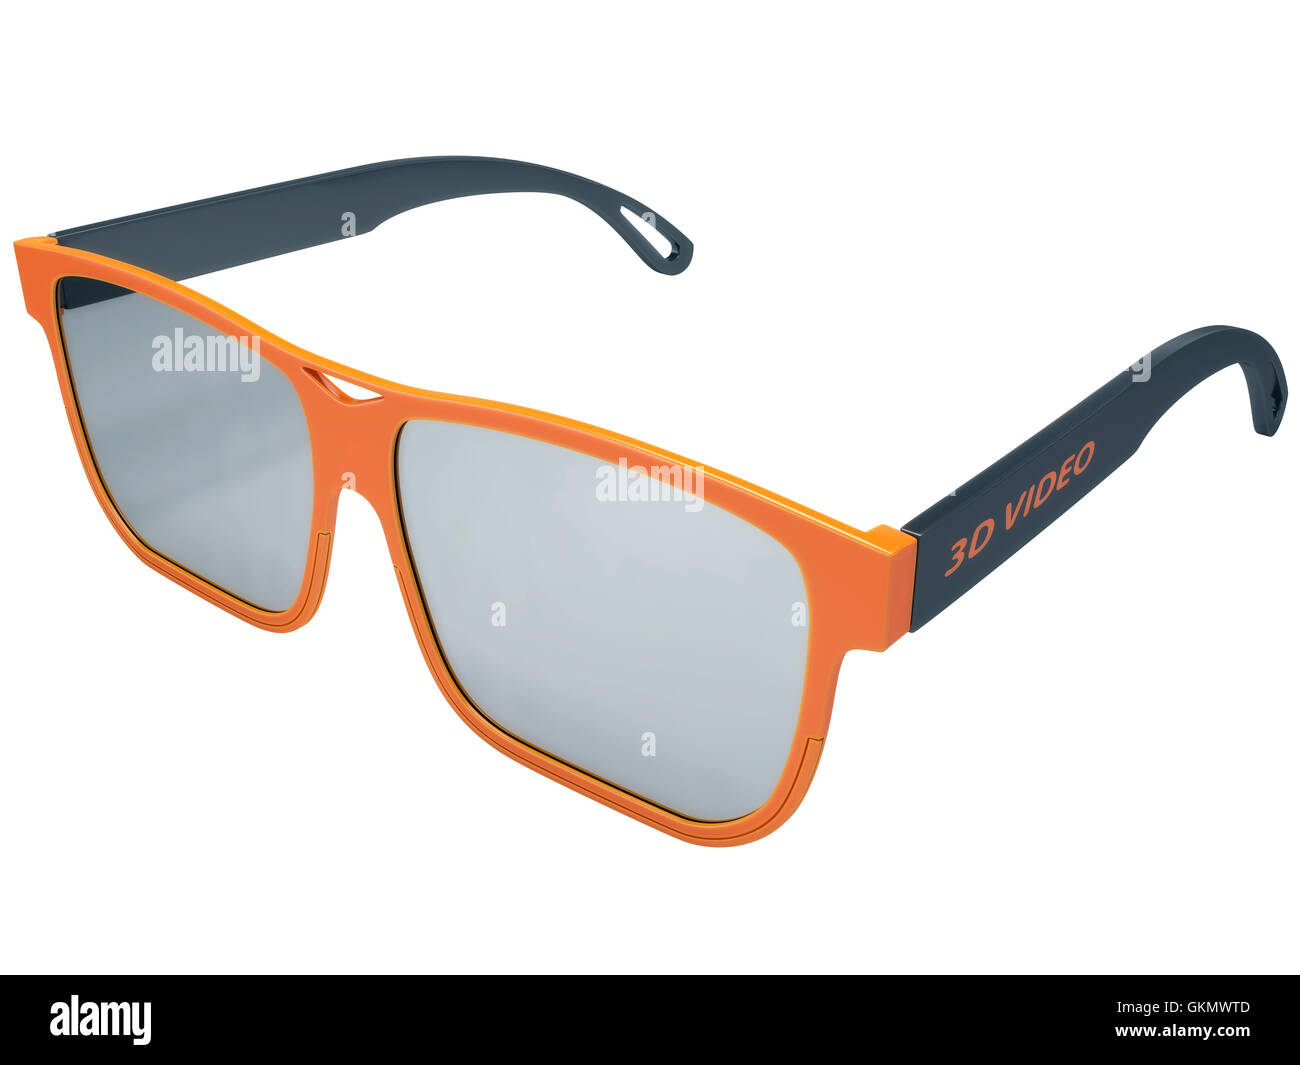 3d glasses for three-dimensional video - Stock Image